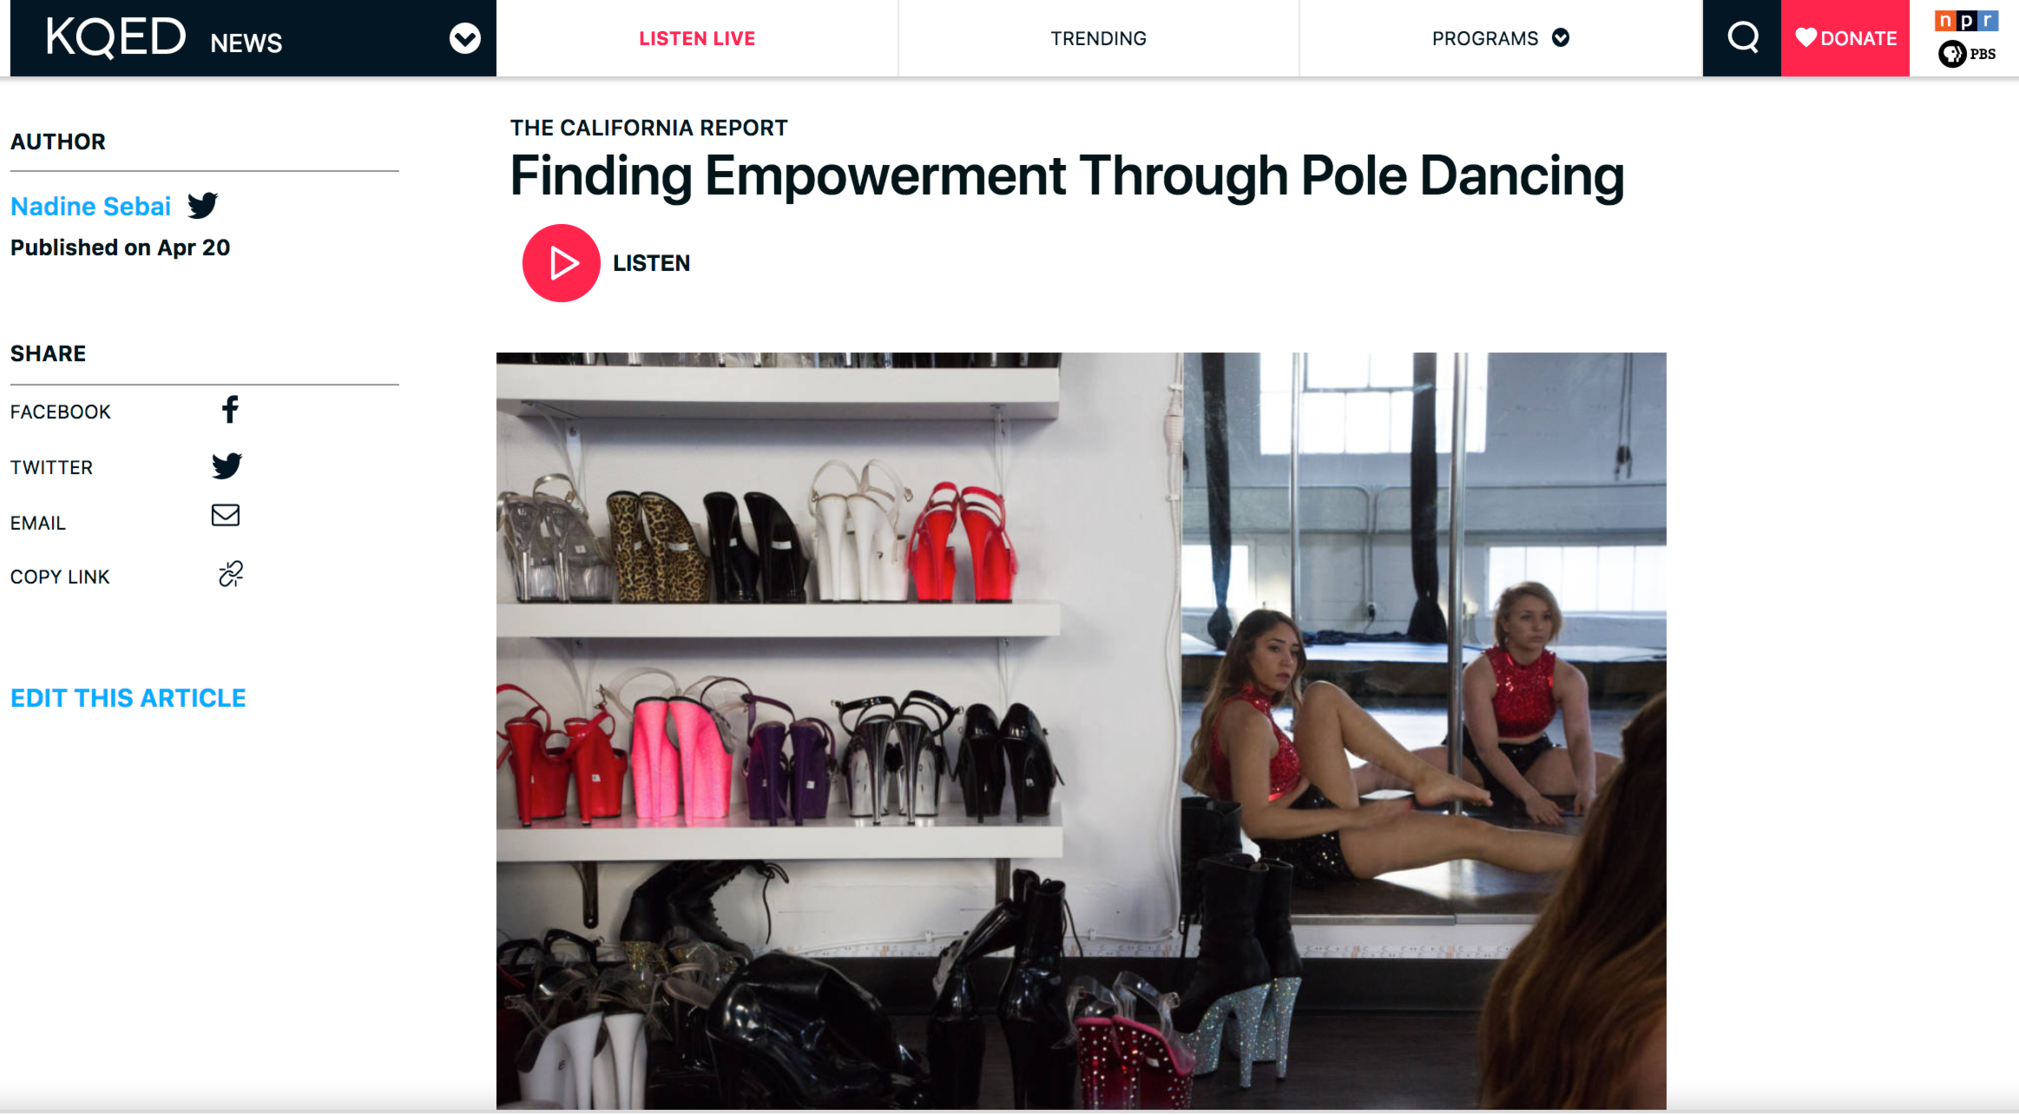 (KQED/The California Report) Finding Empowerment Through Pole Dancing